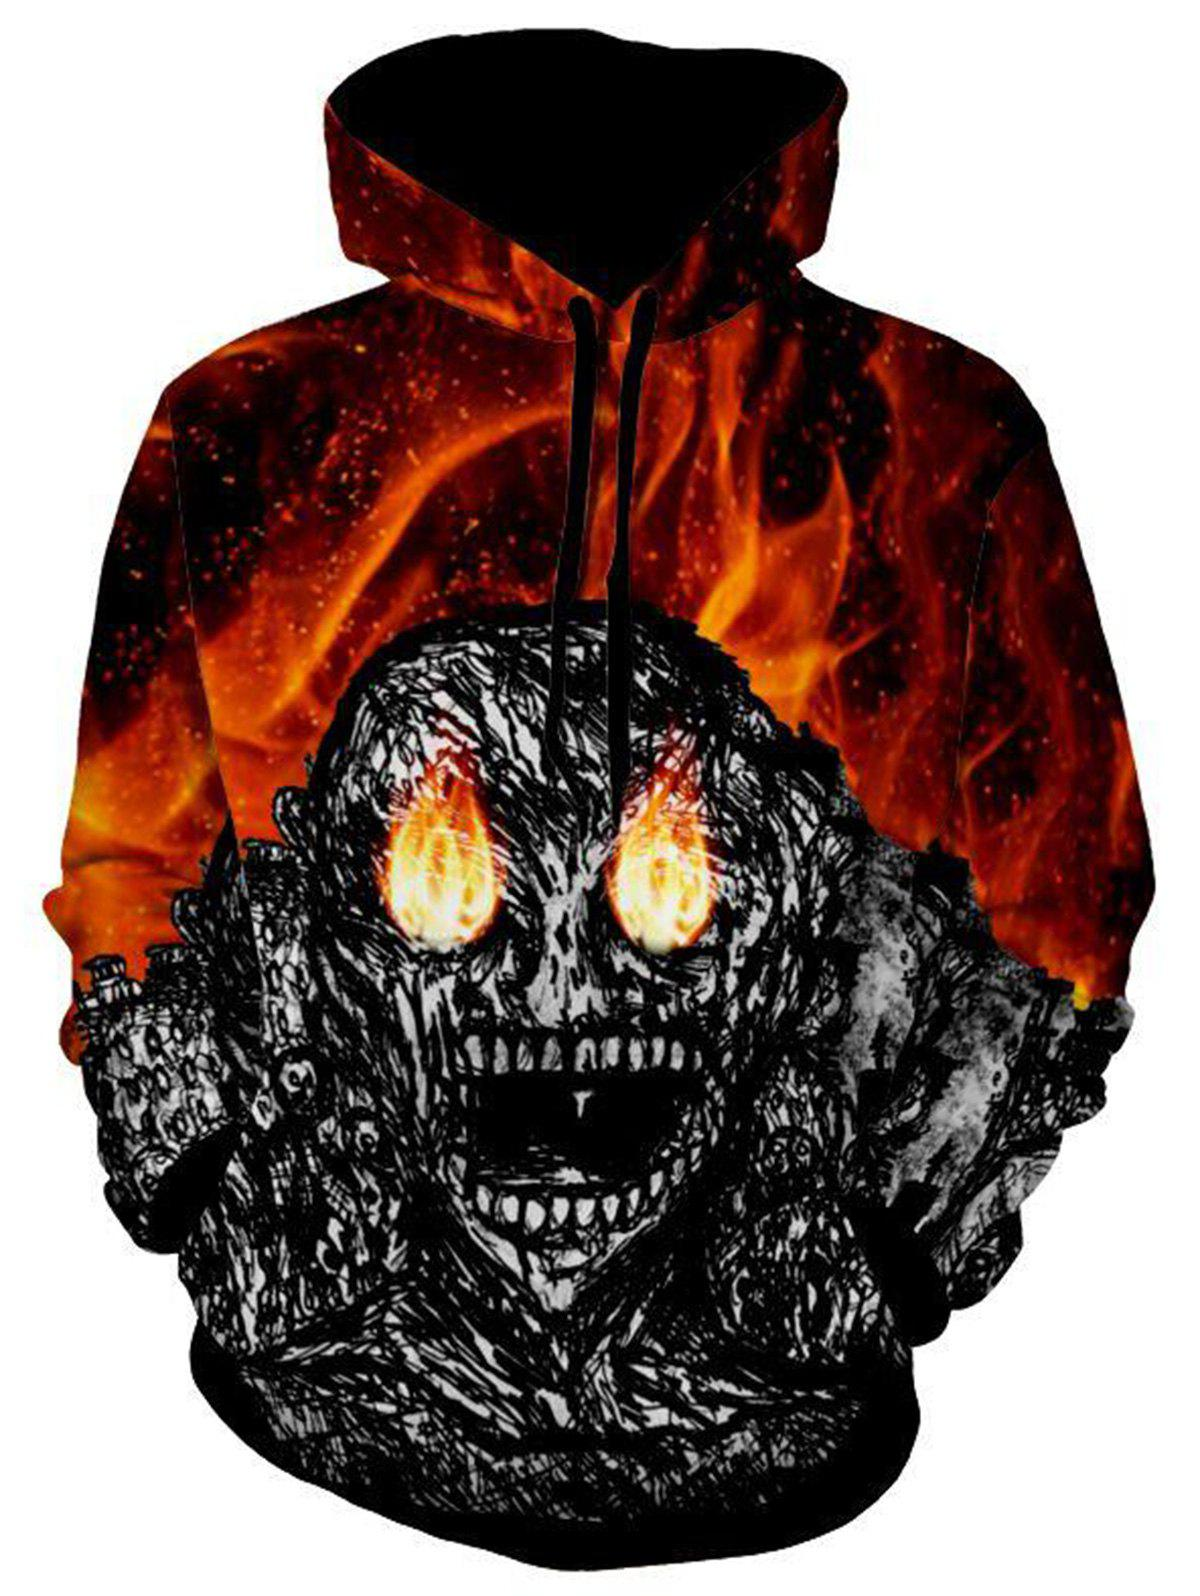 Devil Print Kangaroo Pocket Halloween HoodieMEN<br><br>Size: 3XL; Color: BLACK; Material: Polyester; Clothes Type: Hoodie; Shirt Length: Regular; Sleeve Length: Full; Style: Gothic; Patterns: Skulls; Thickness: Regular; Occasion: Casual; Weight: 0.5900kg; Package Contents: 1 x Hoodie;